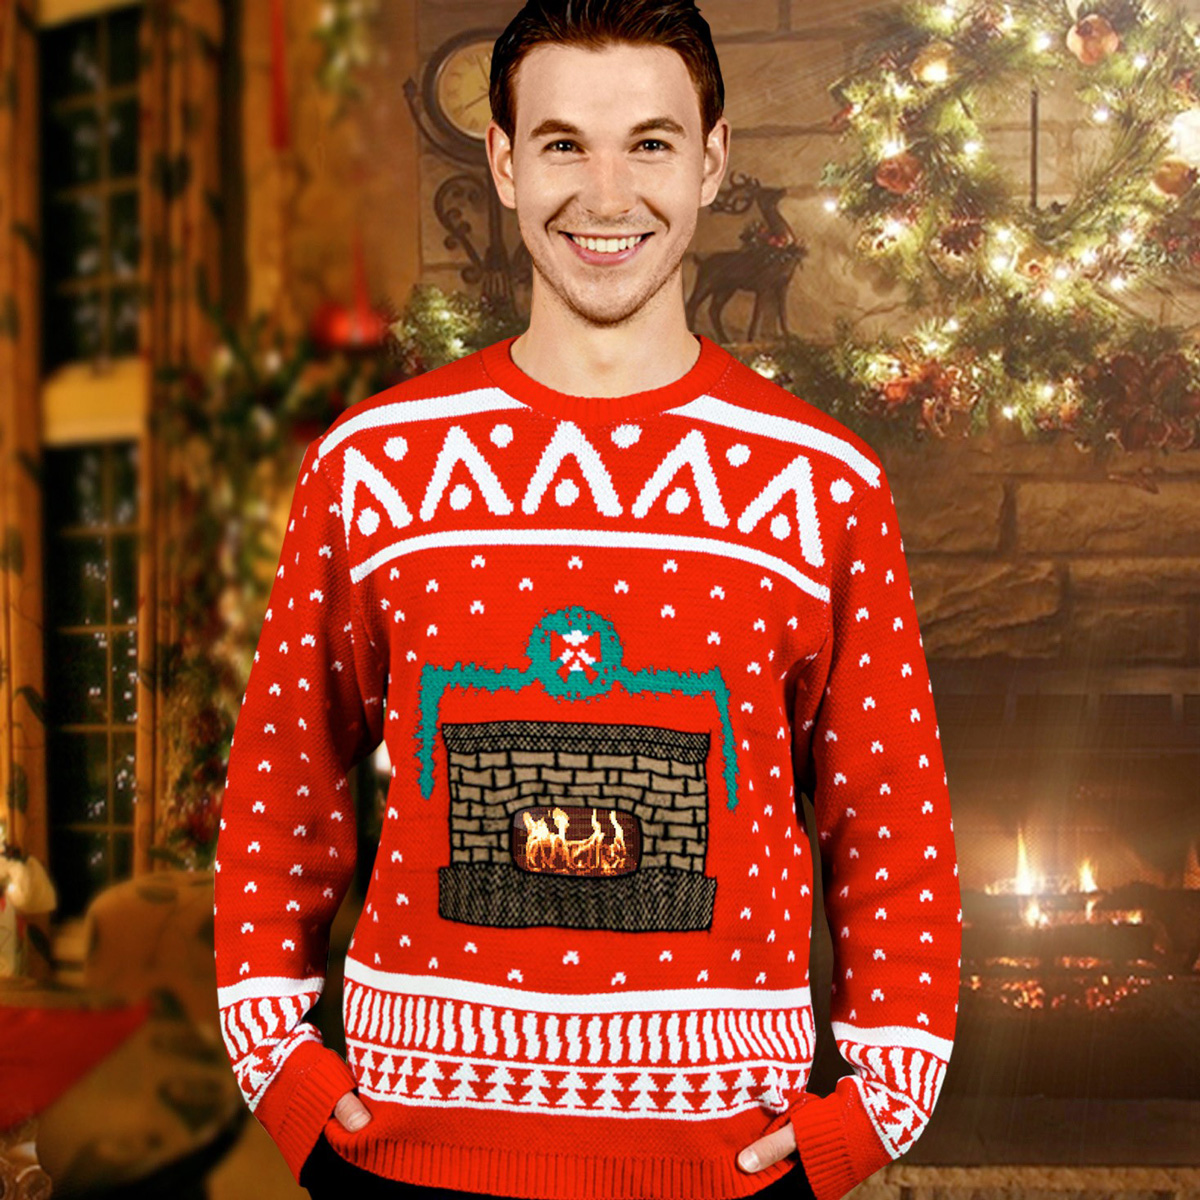 Animated Crackling Fireplace Ugly Christmas Sweaters